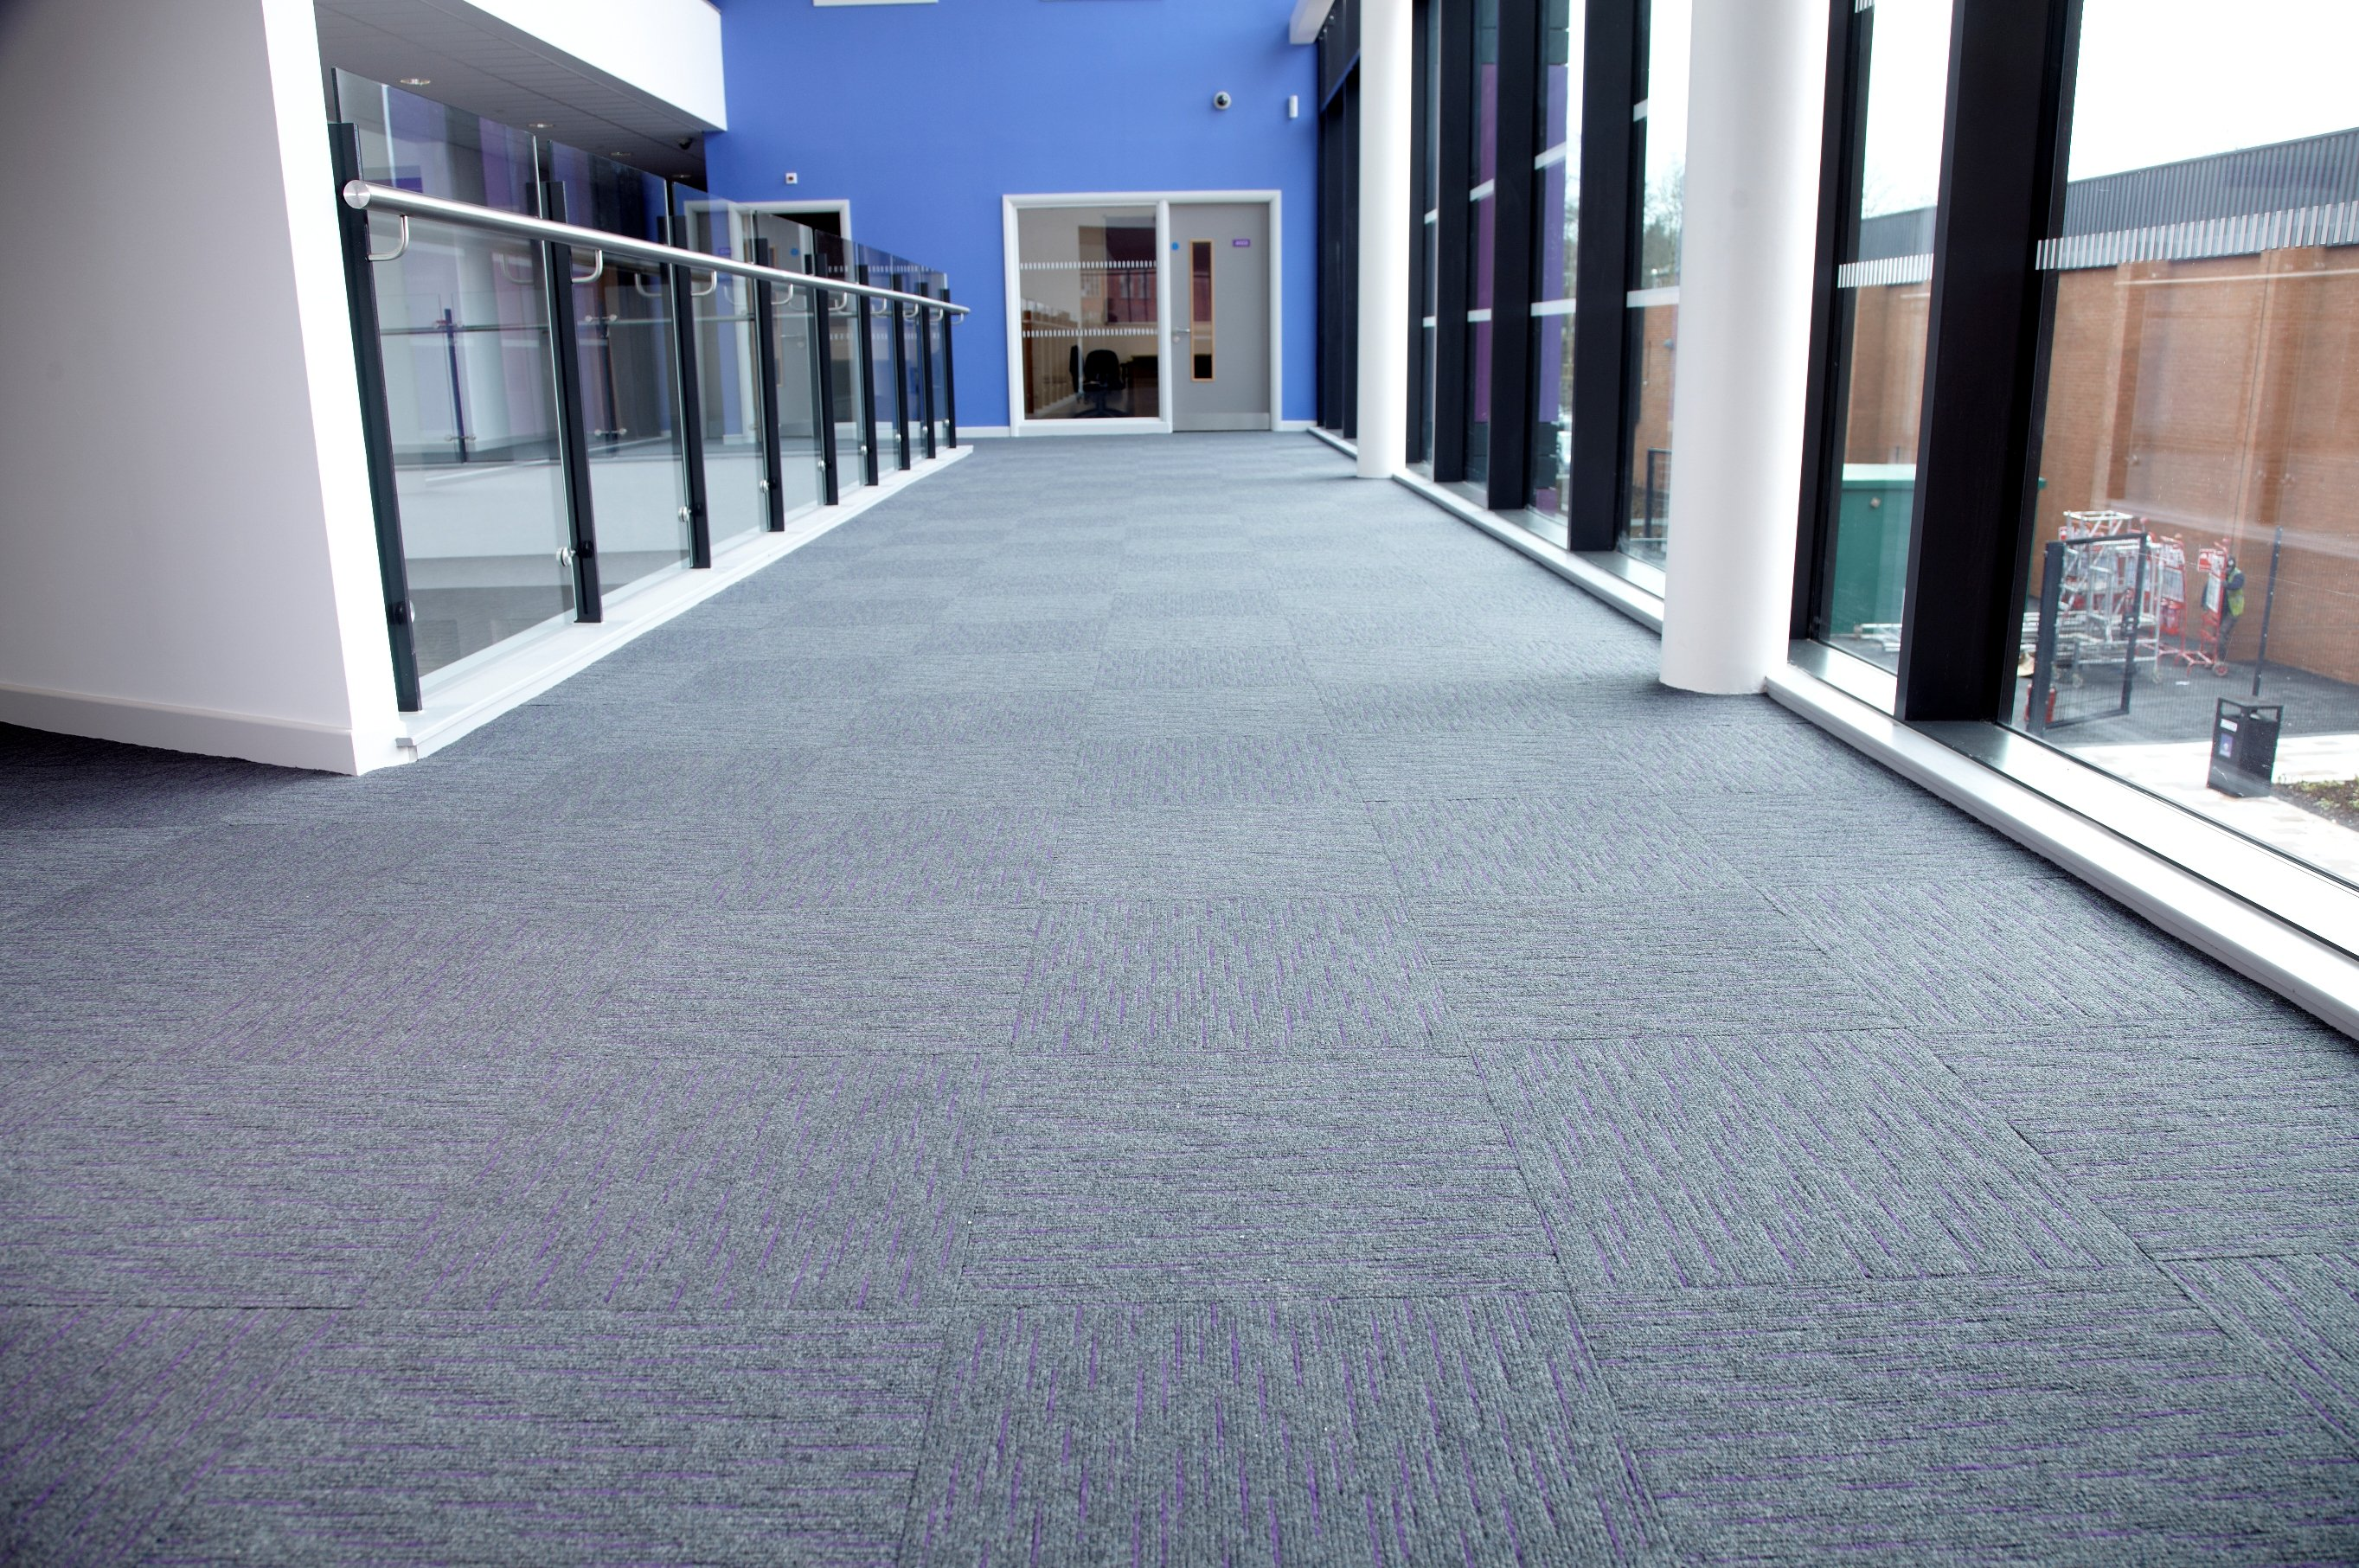 NEW CARPET RANGE IS TOP OF THE CLASS